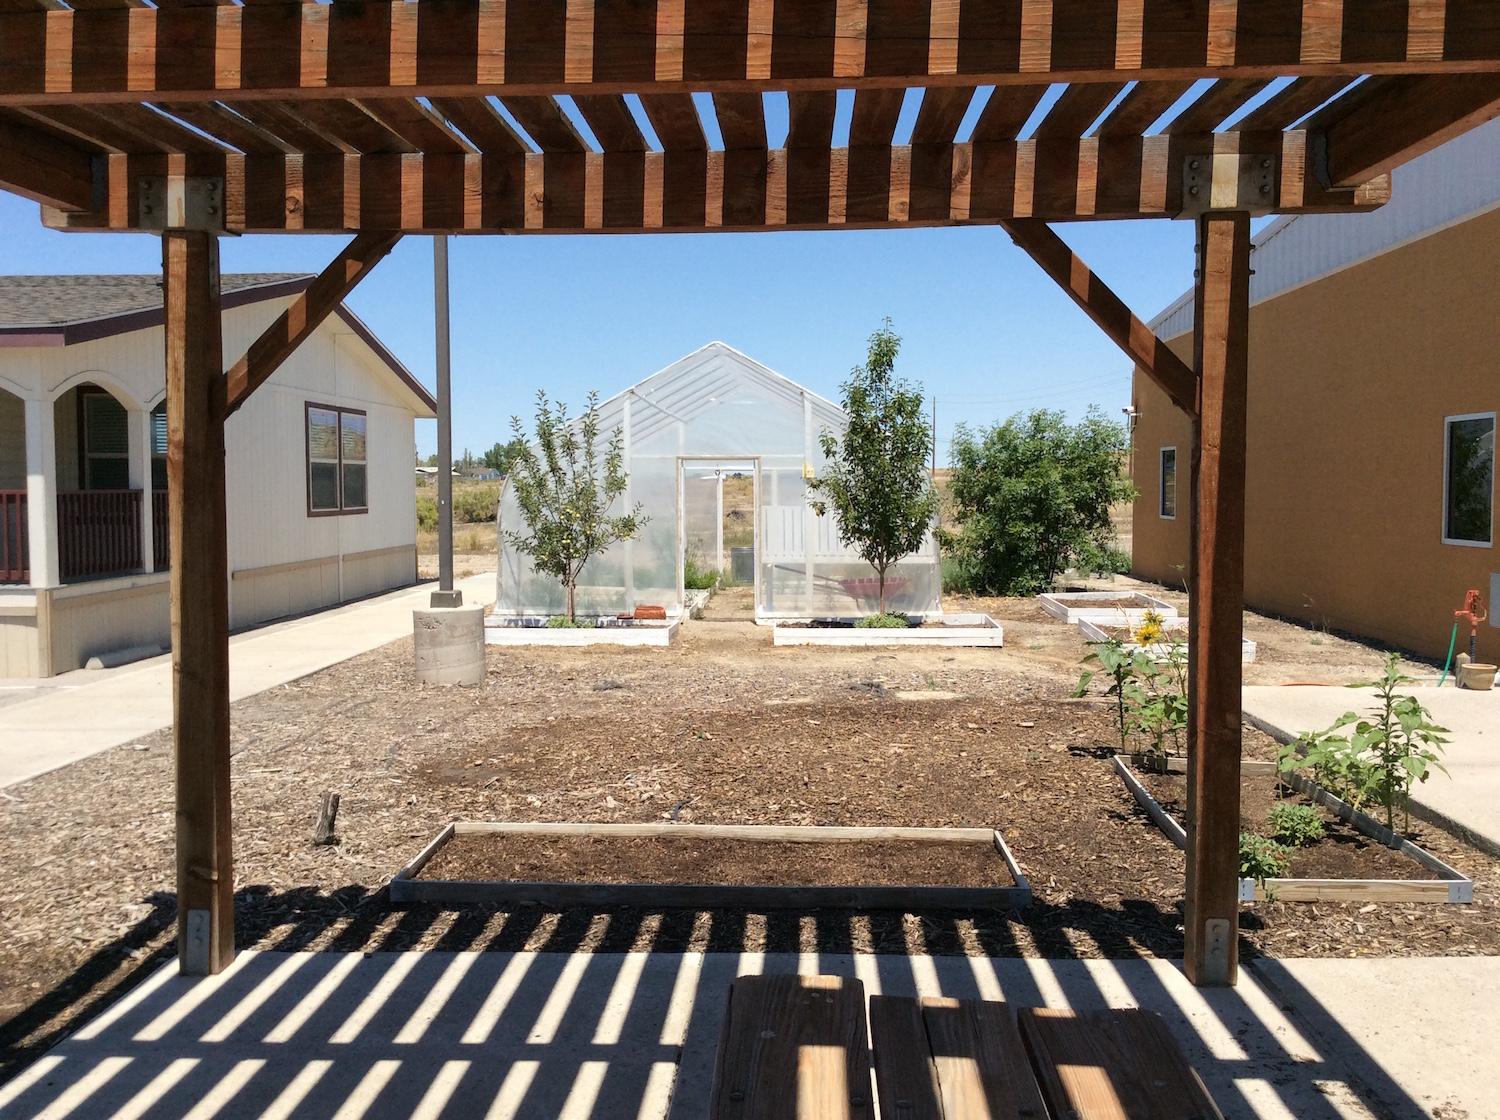 Reno-Sparks Indian Colony raises awareness of health issues with hoop house